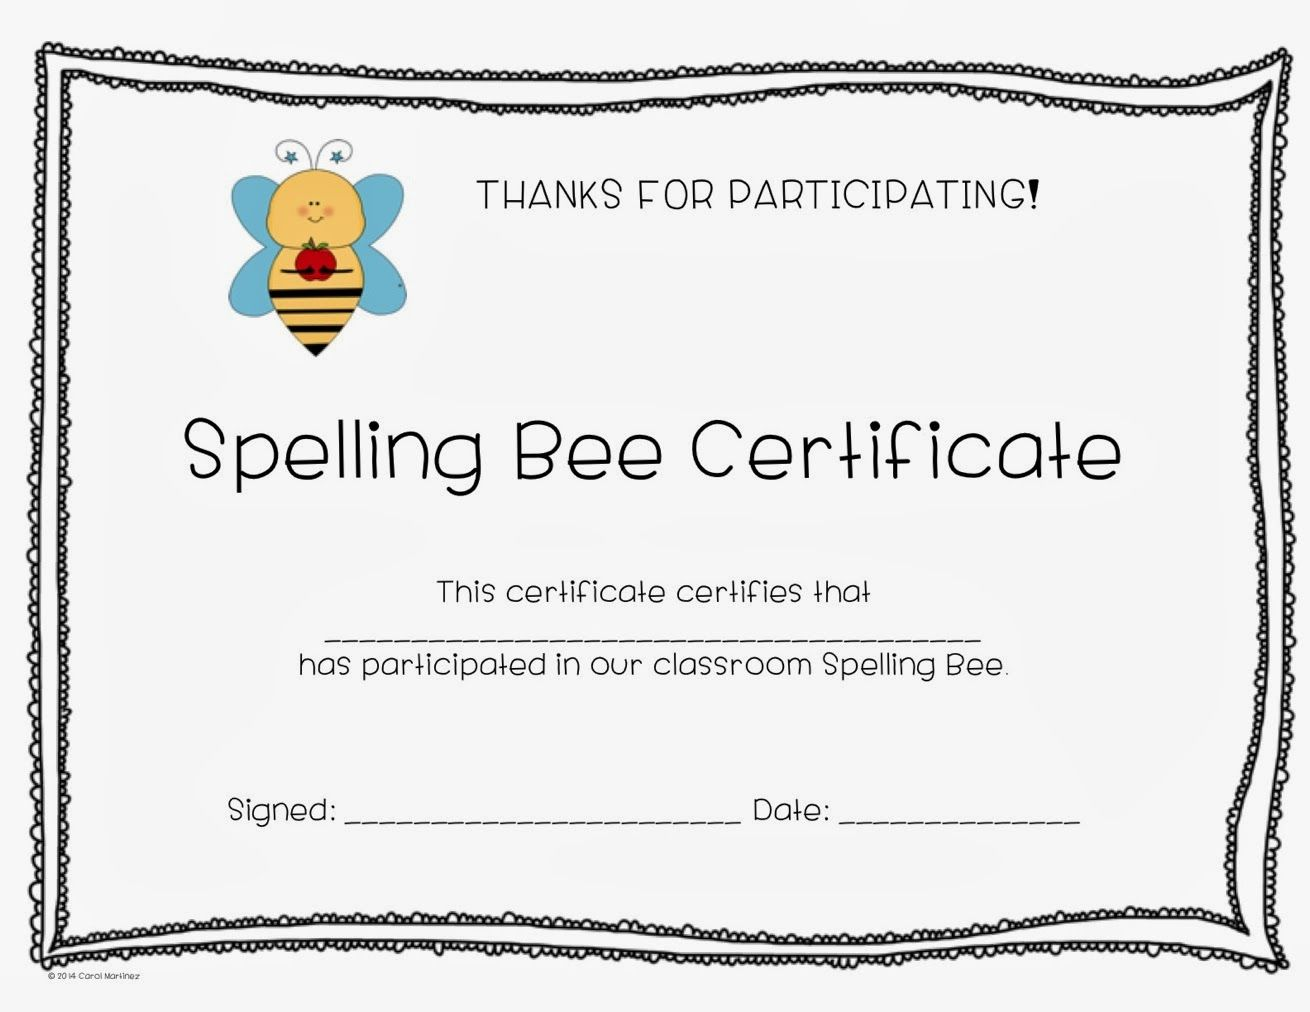 Spelling bee certificates pta spelling bee pinterest bee heres a sweet spelling bee certificate for you to use when you have a spelling bee in your class all the kids deserve one for trying customer tips how 1betcityfo Image collections